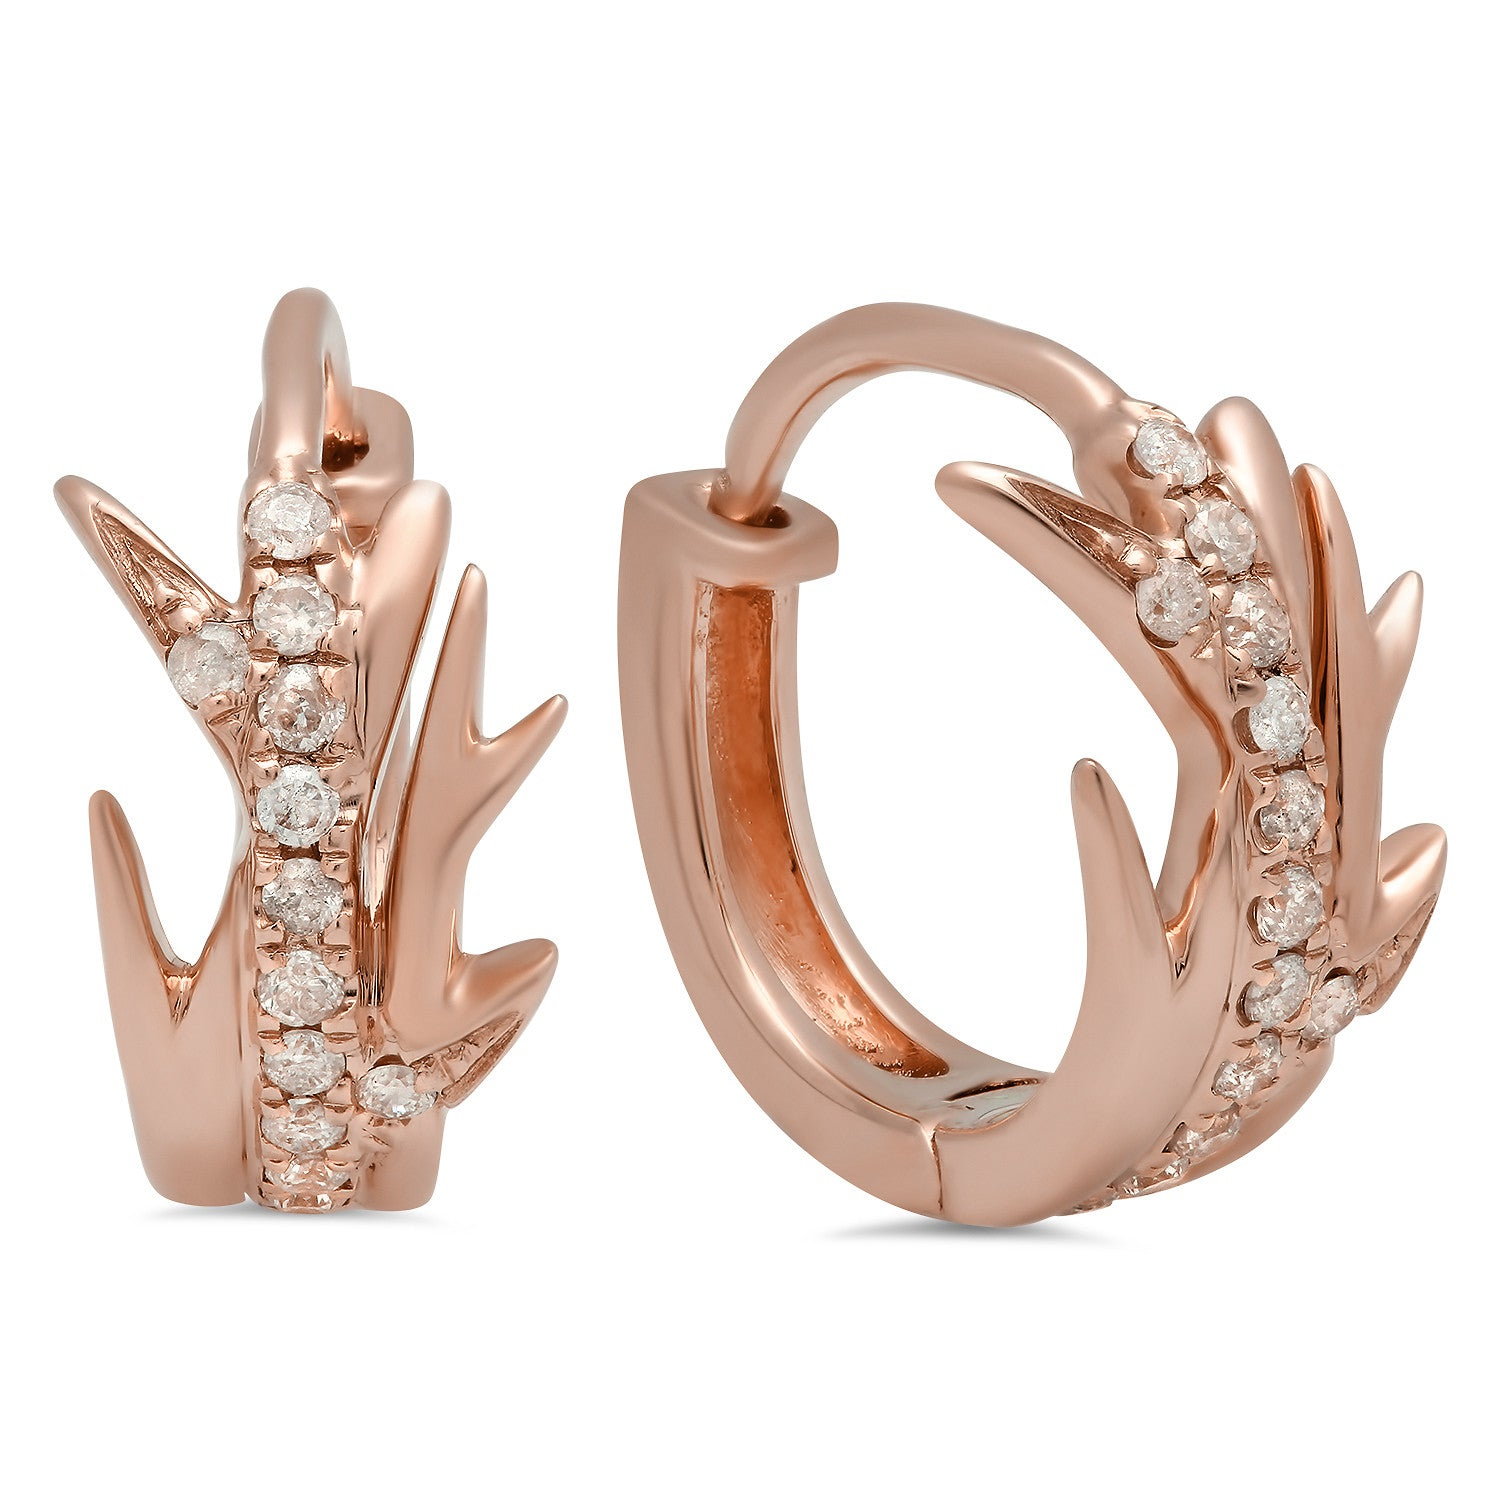 Elodie K Rose Gold Thorns Hoop Earrings